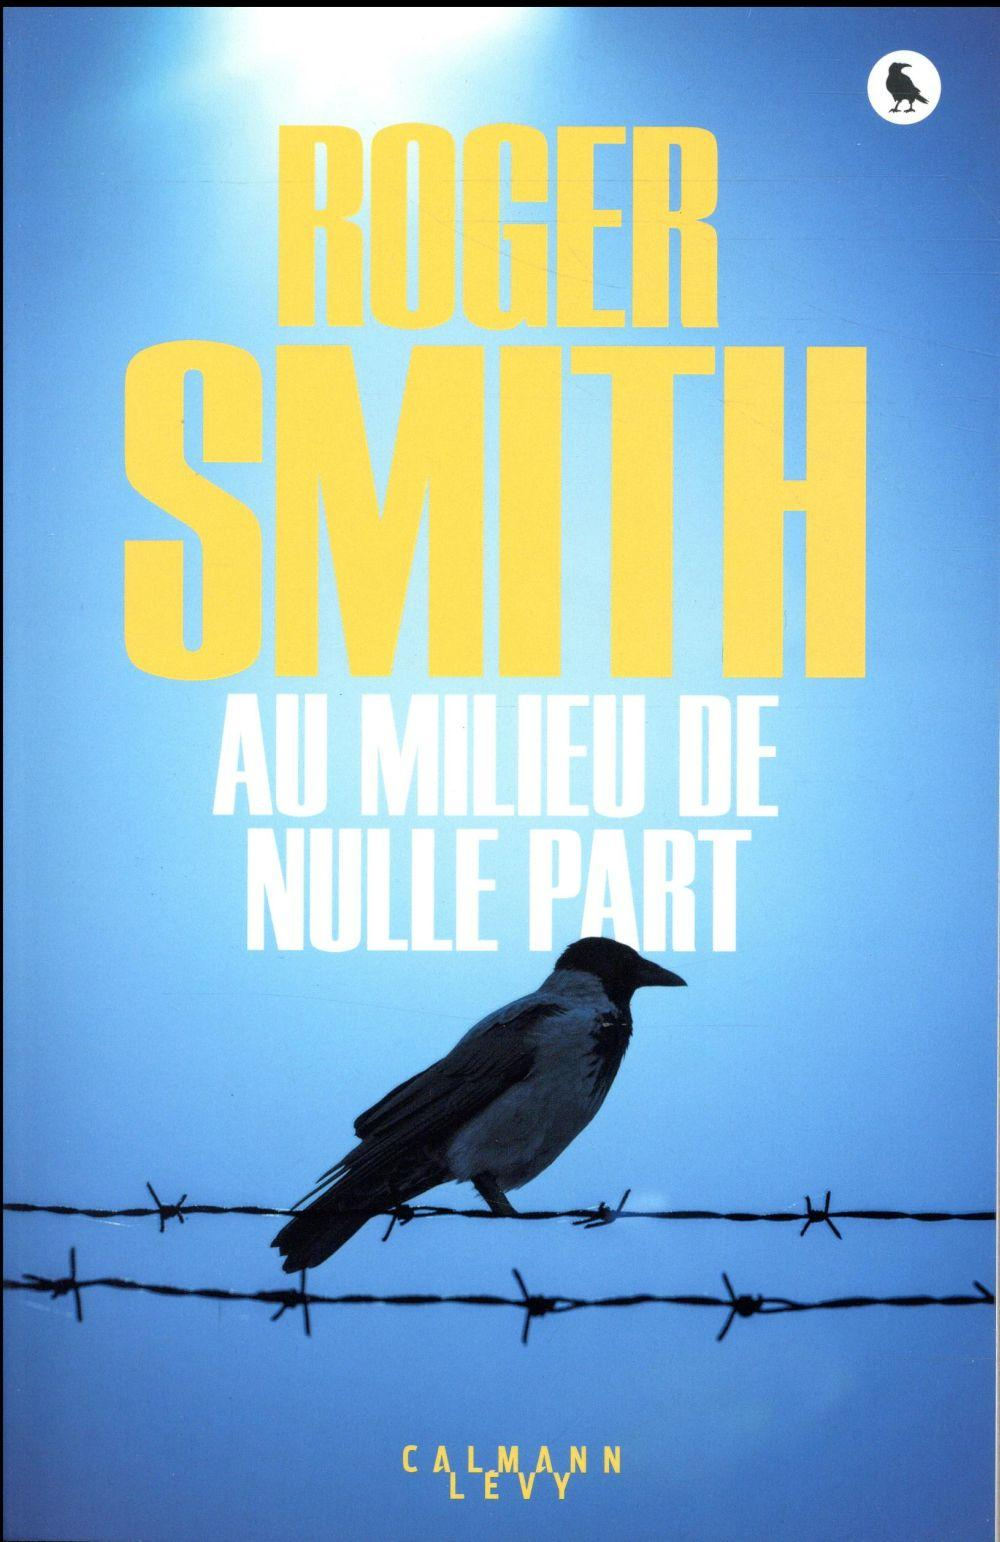 Au milieu de nulle part  - Roger Smith